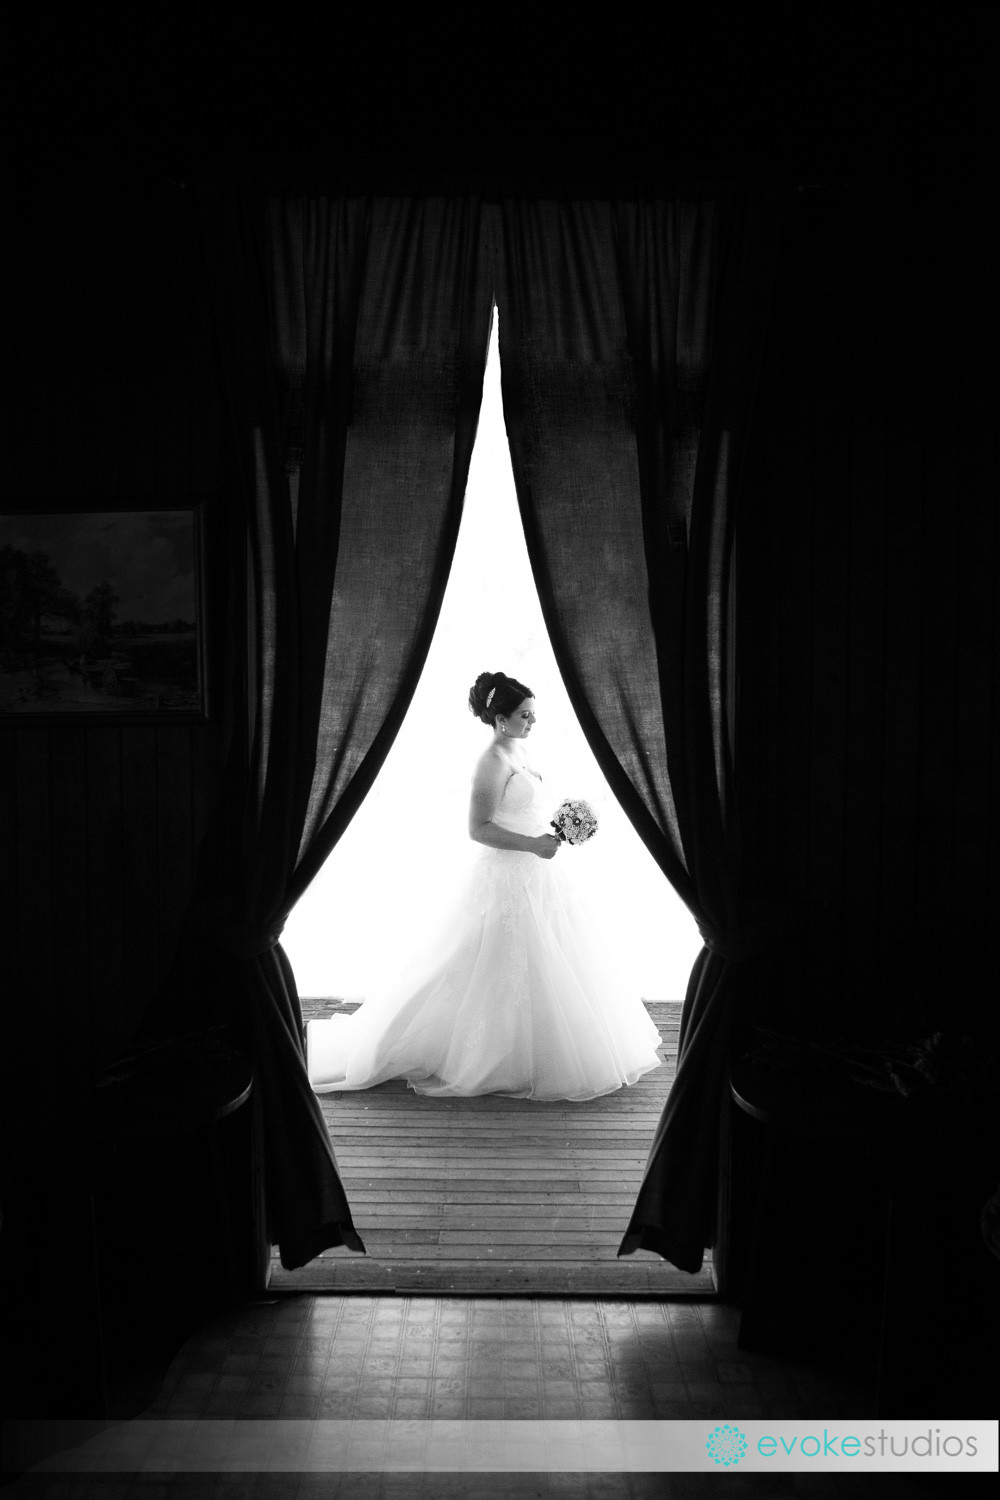 B&W bride in waiting